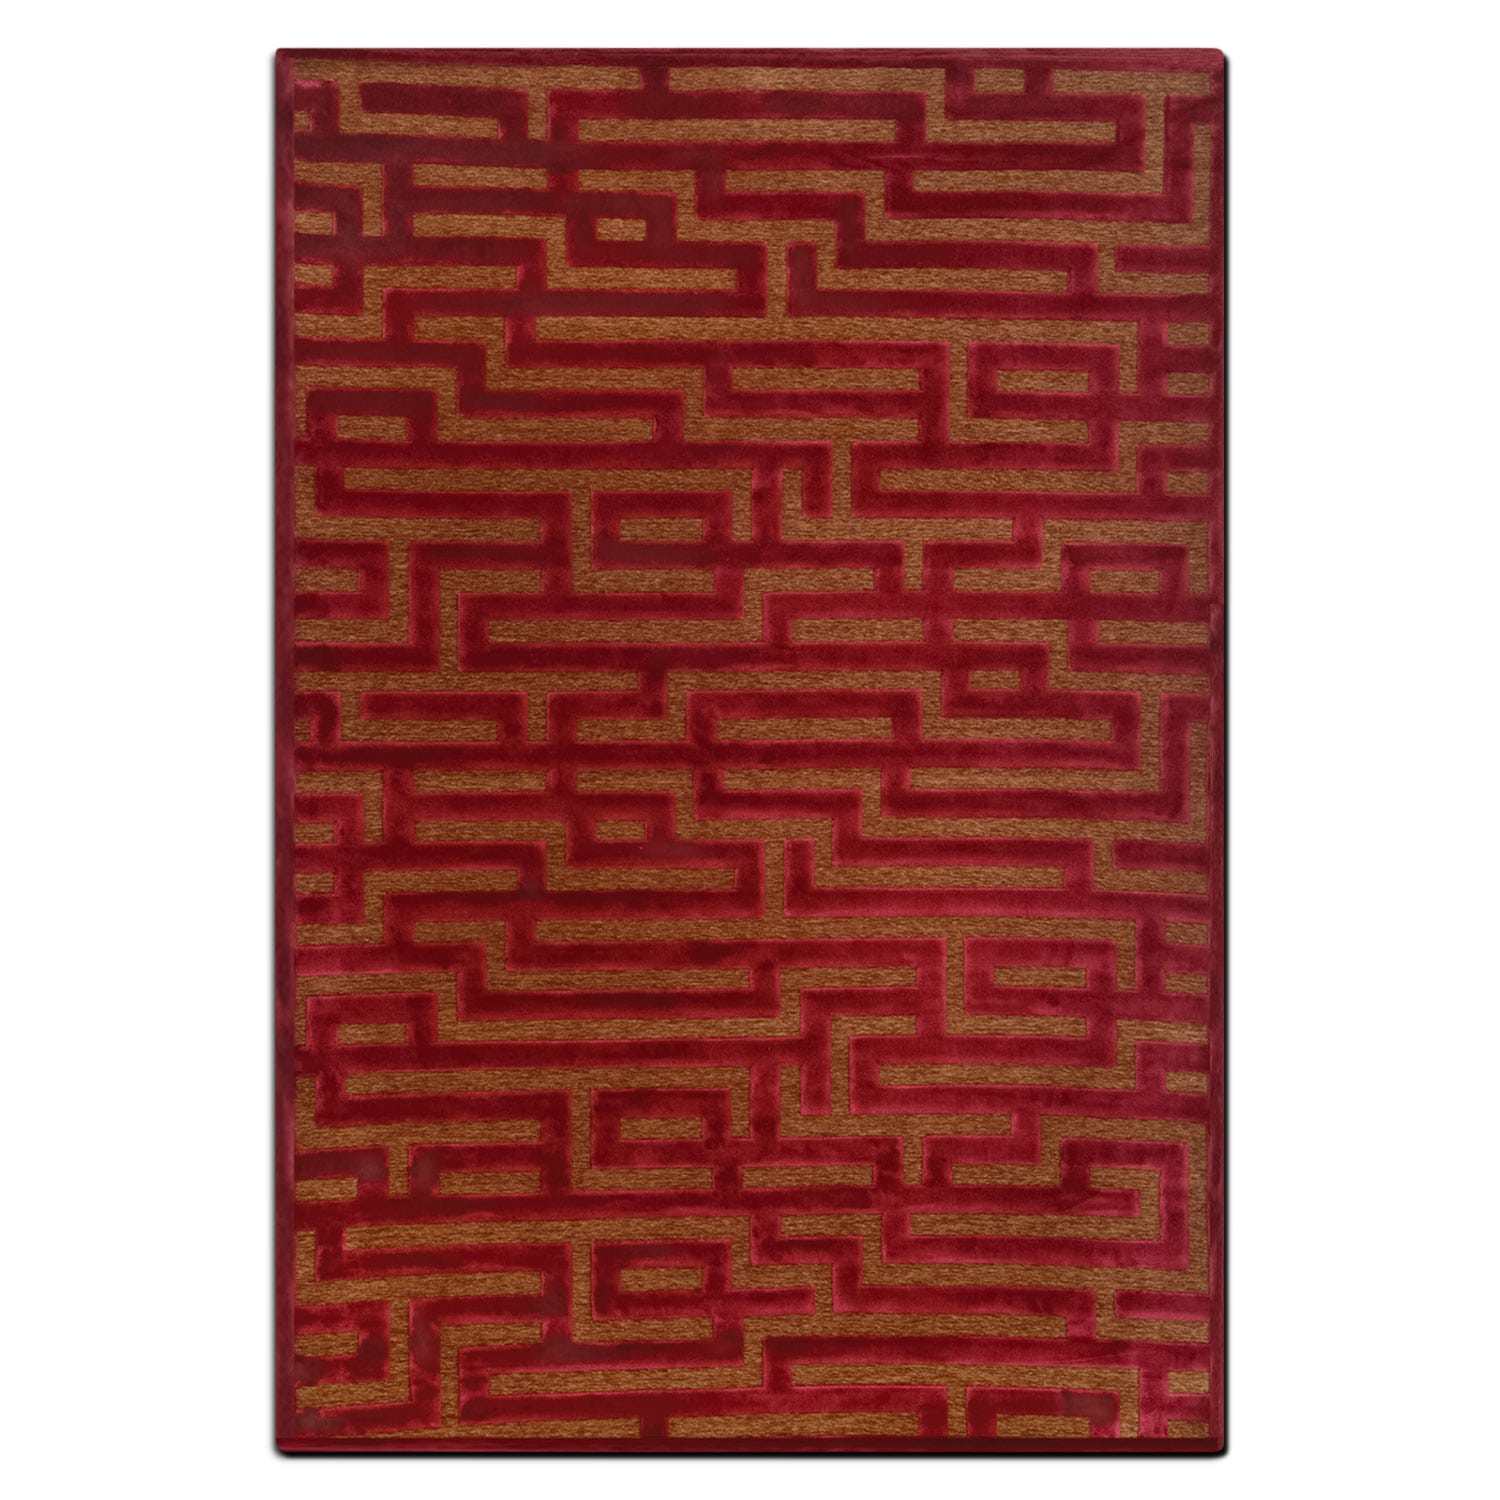 Rugs - Napa 5' x 8' Area Rug - Red and Brown